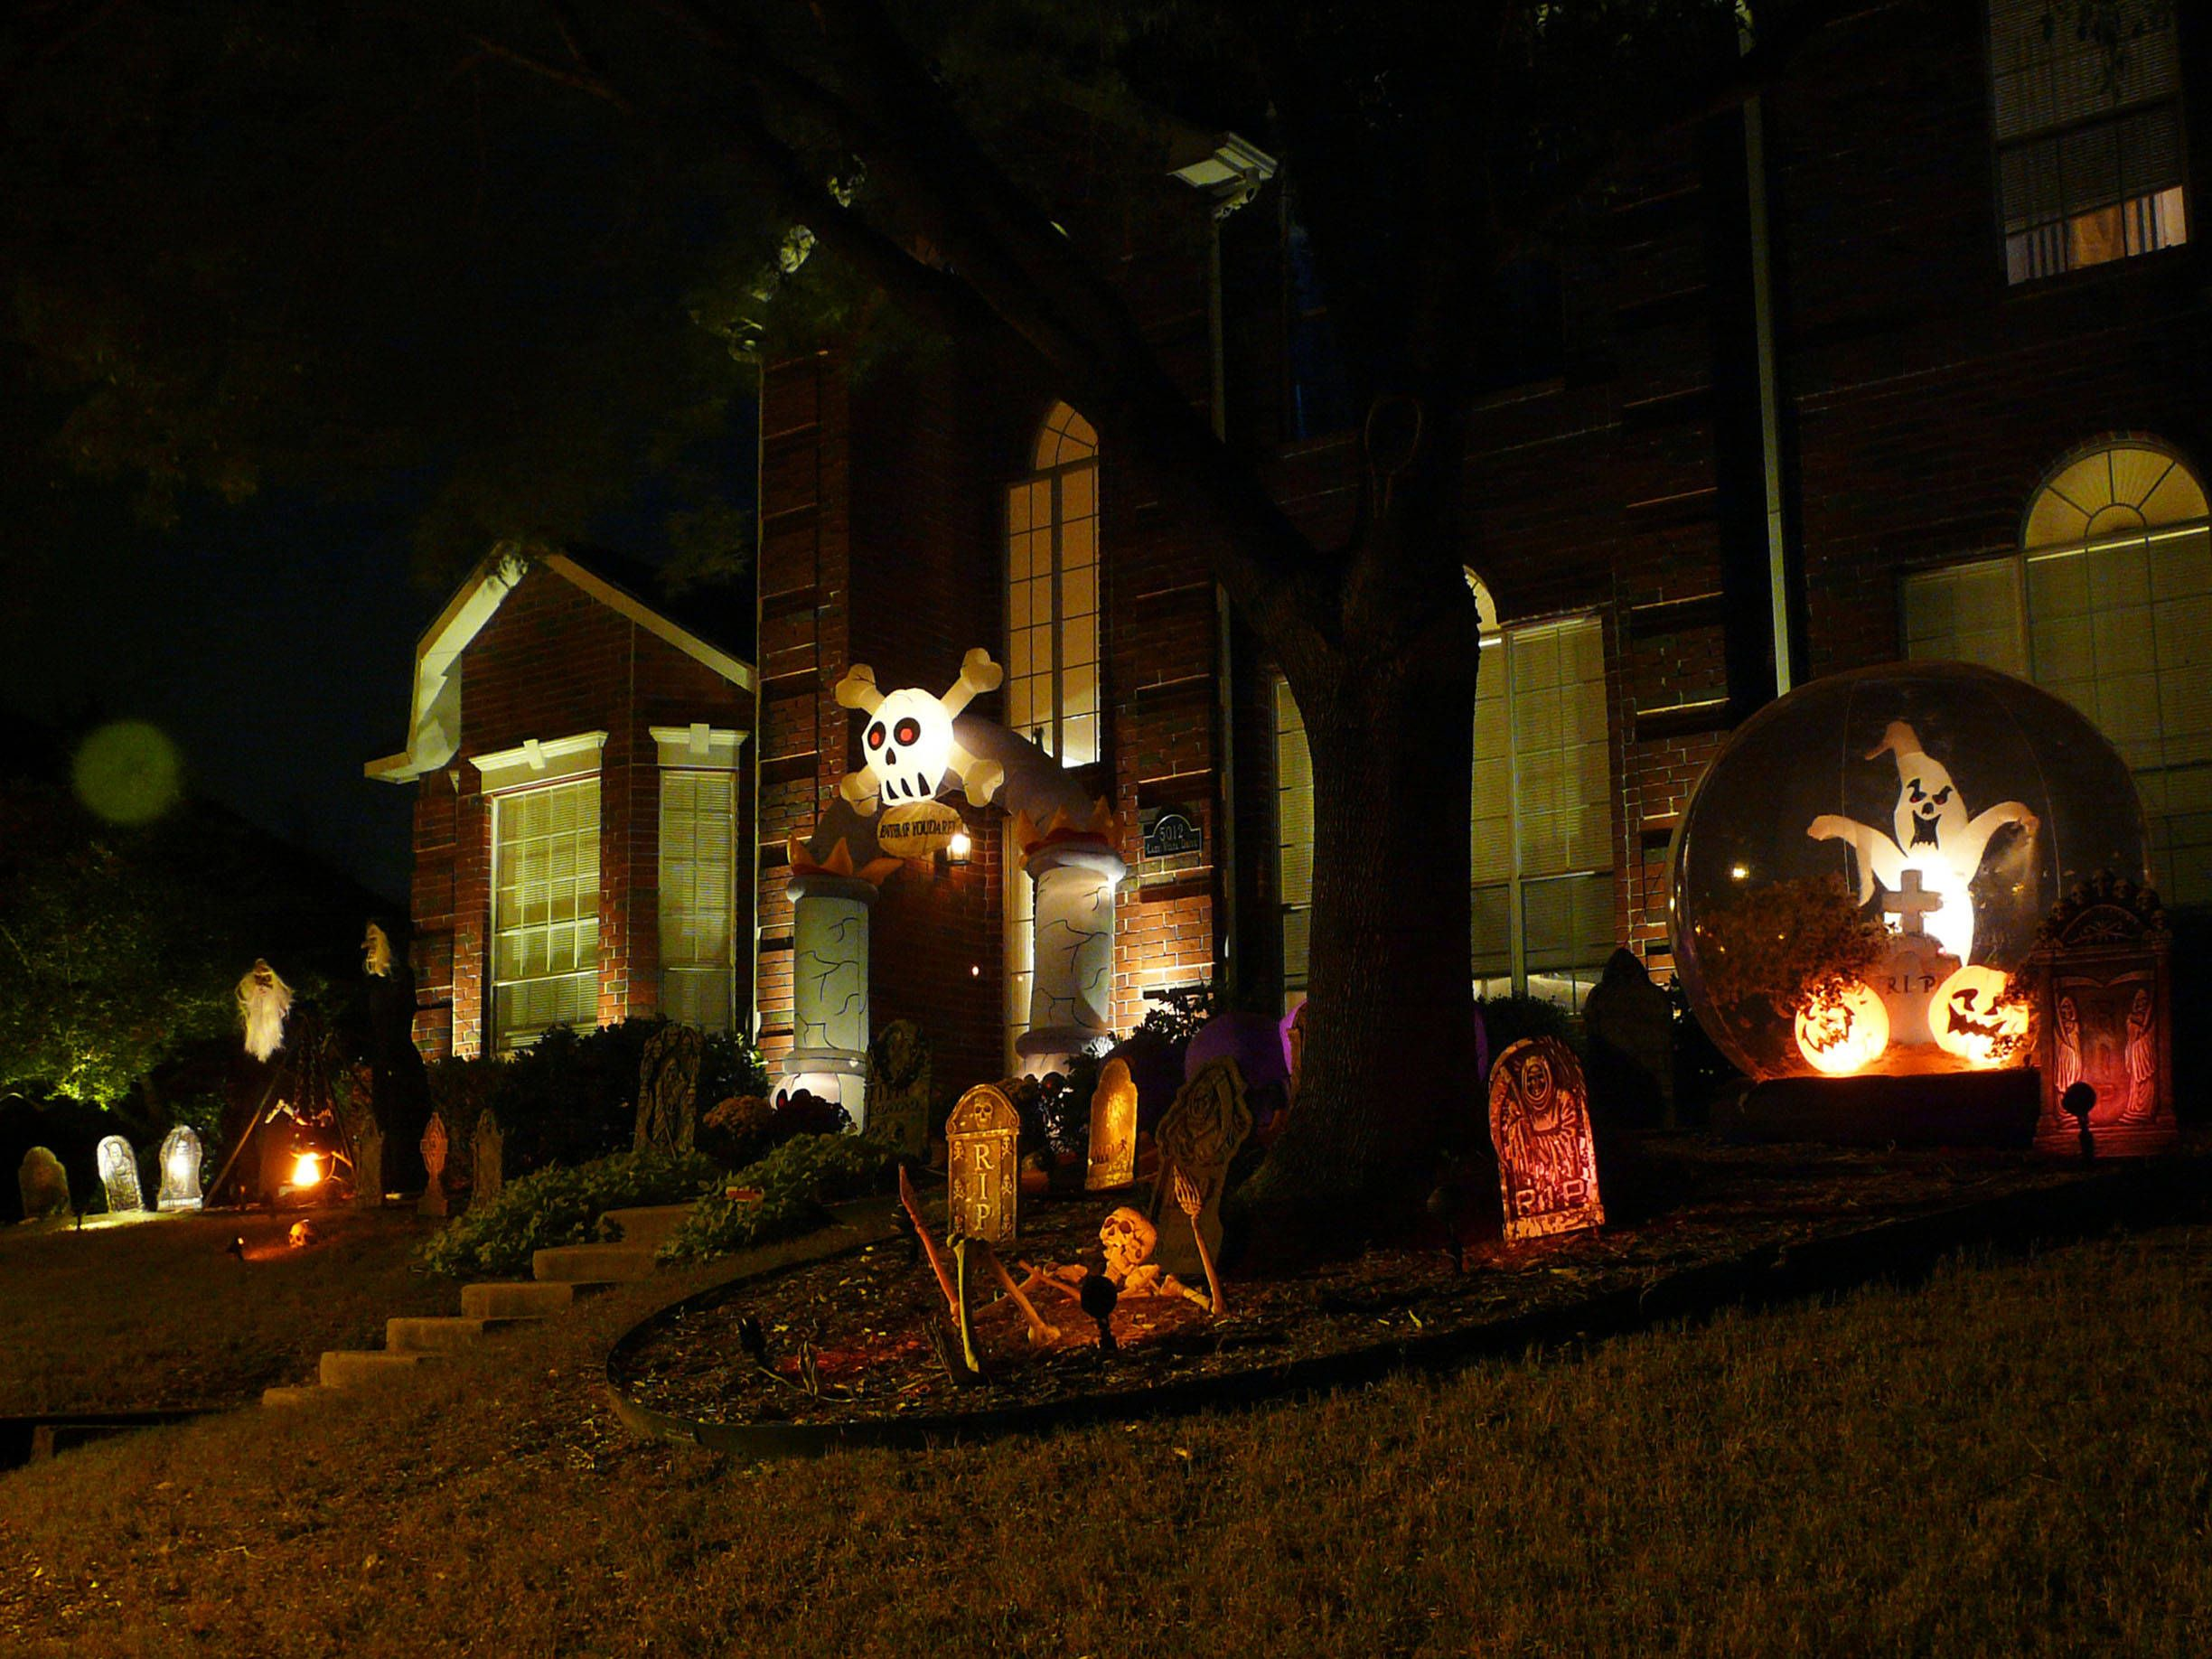 outdoor halloween decorations texas reader submissions show us your outdoor